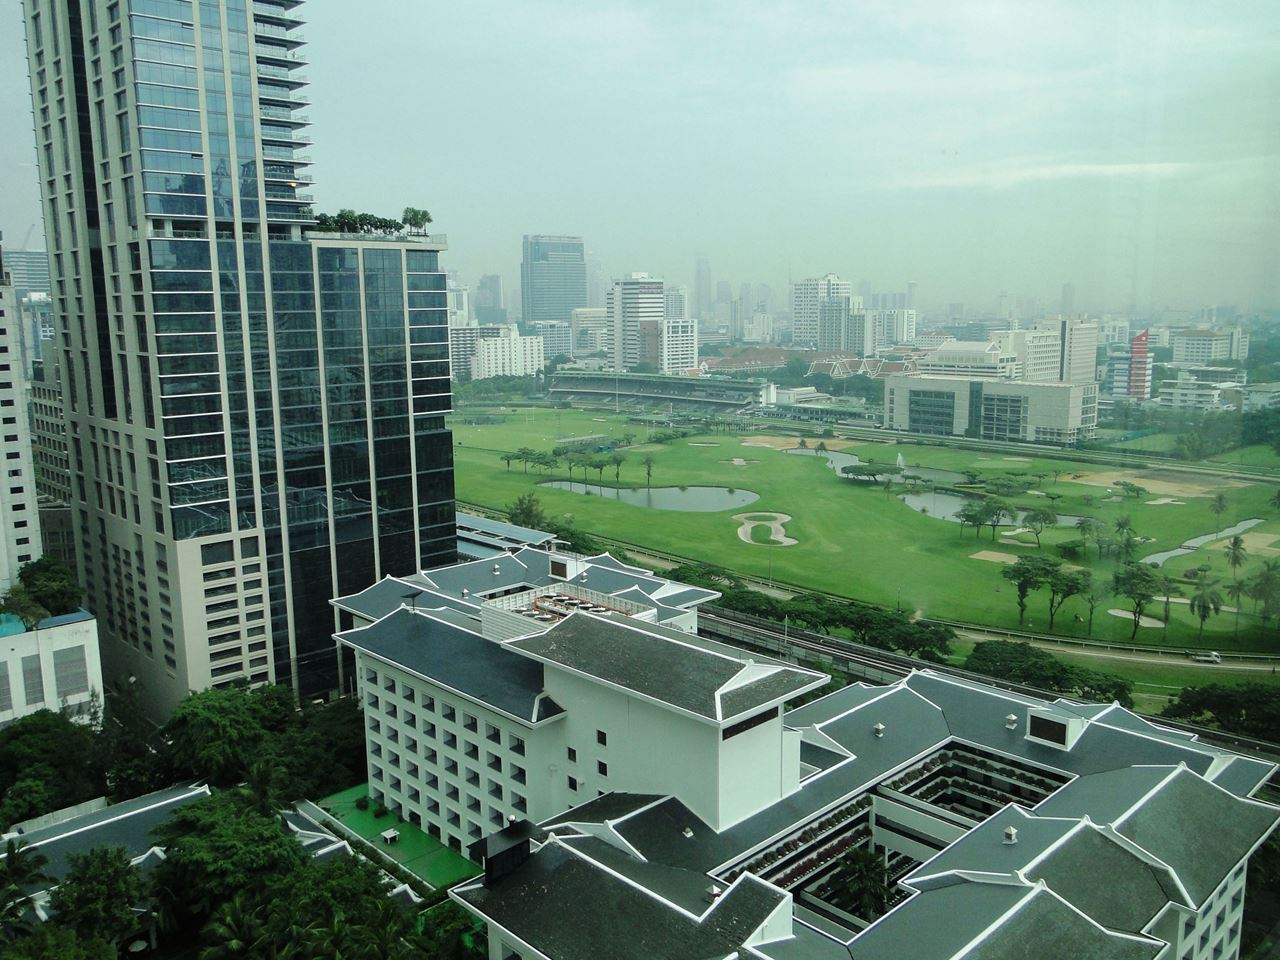 Our stay at Grande Centre Point Hotel Bangkok Thailand